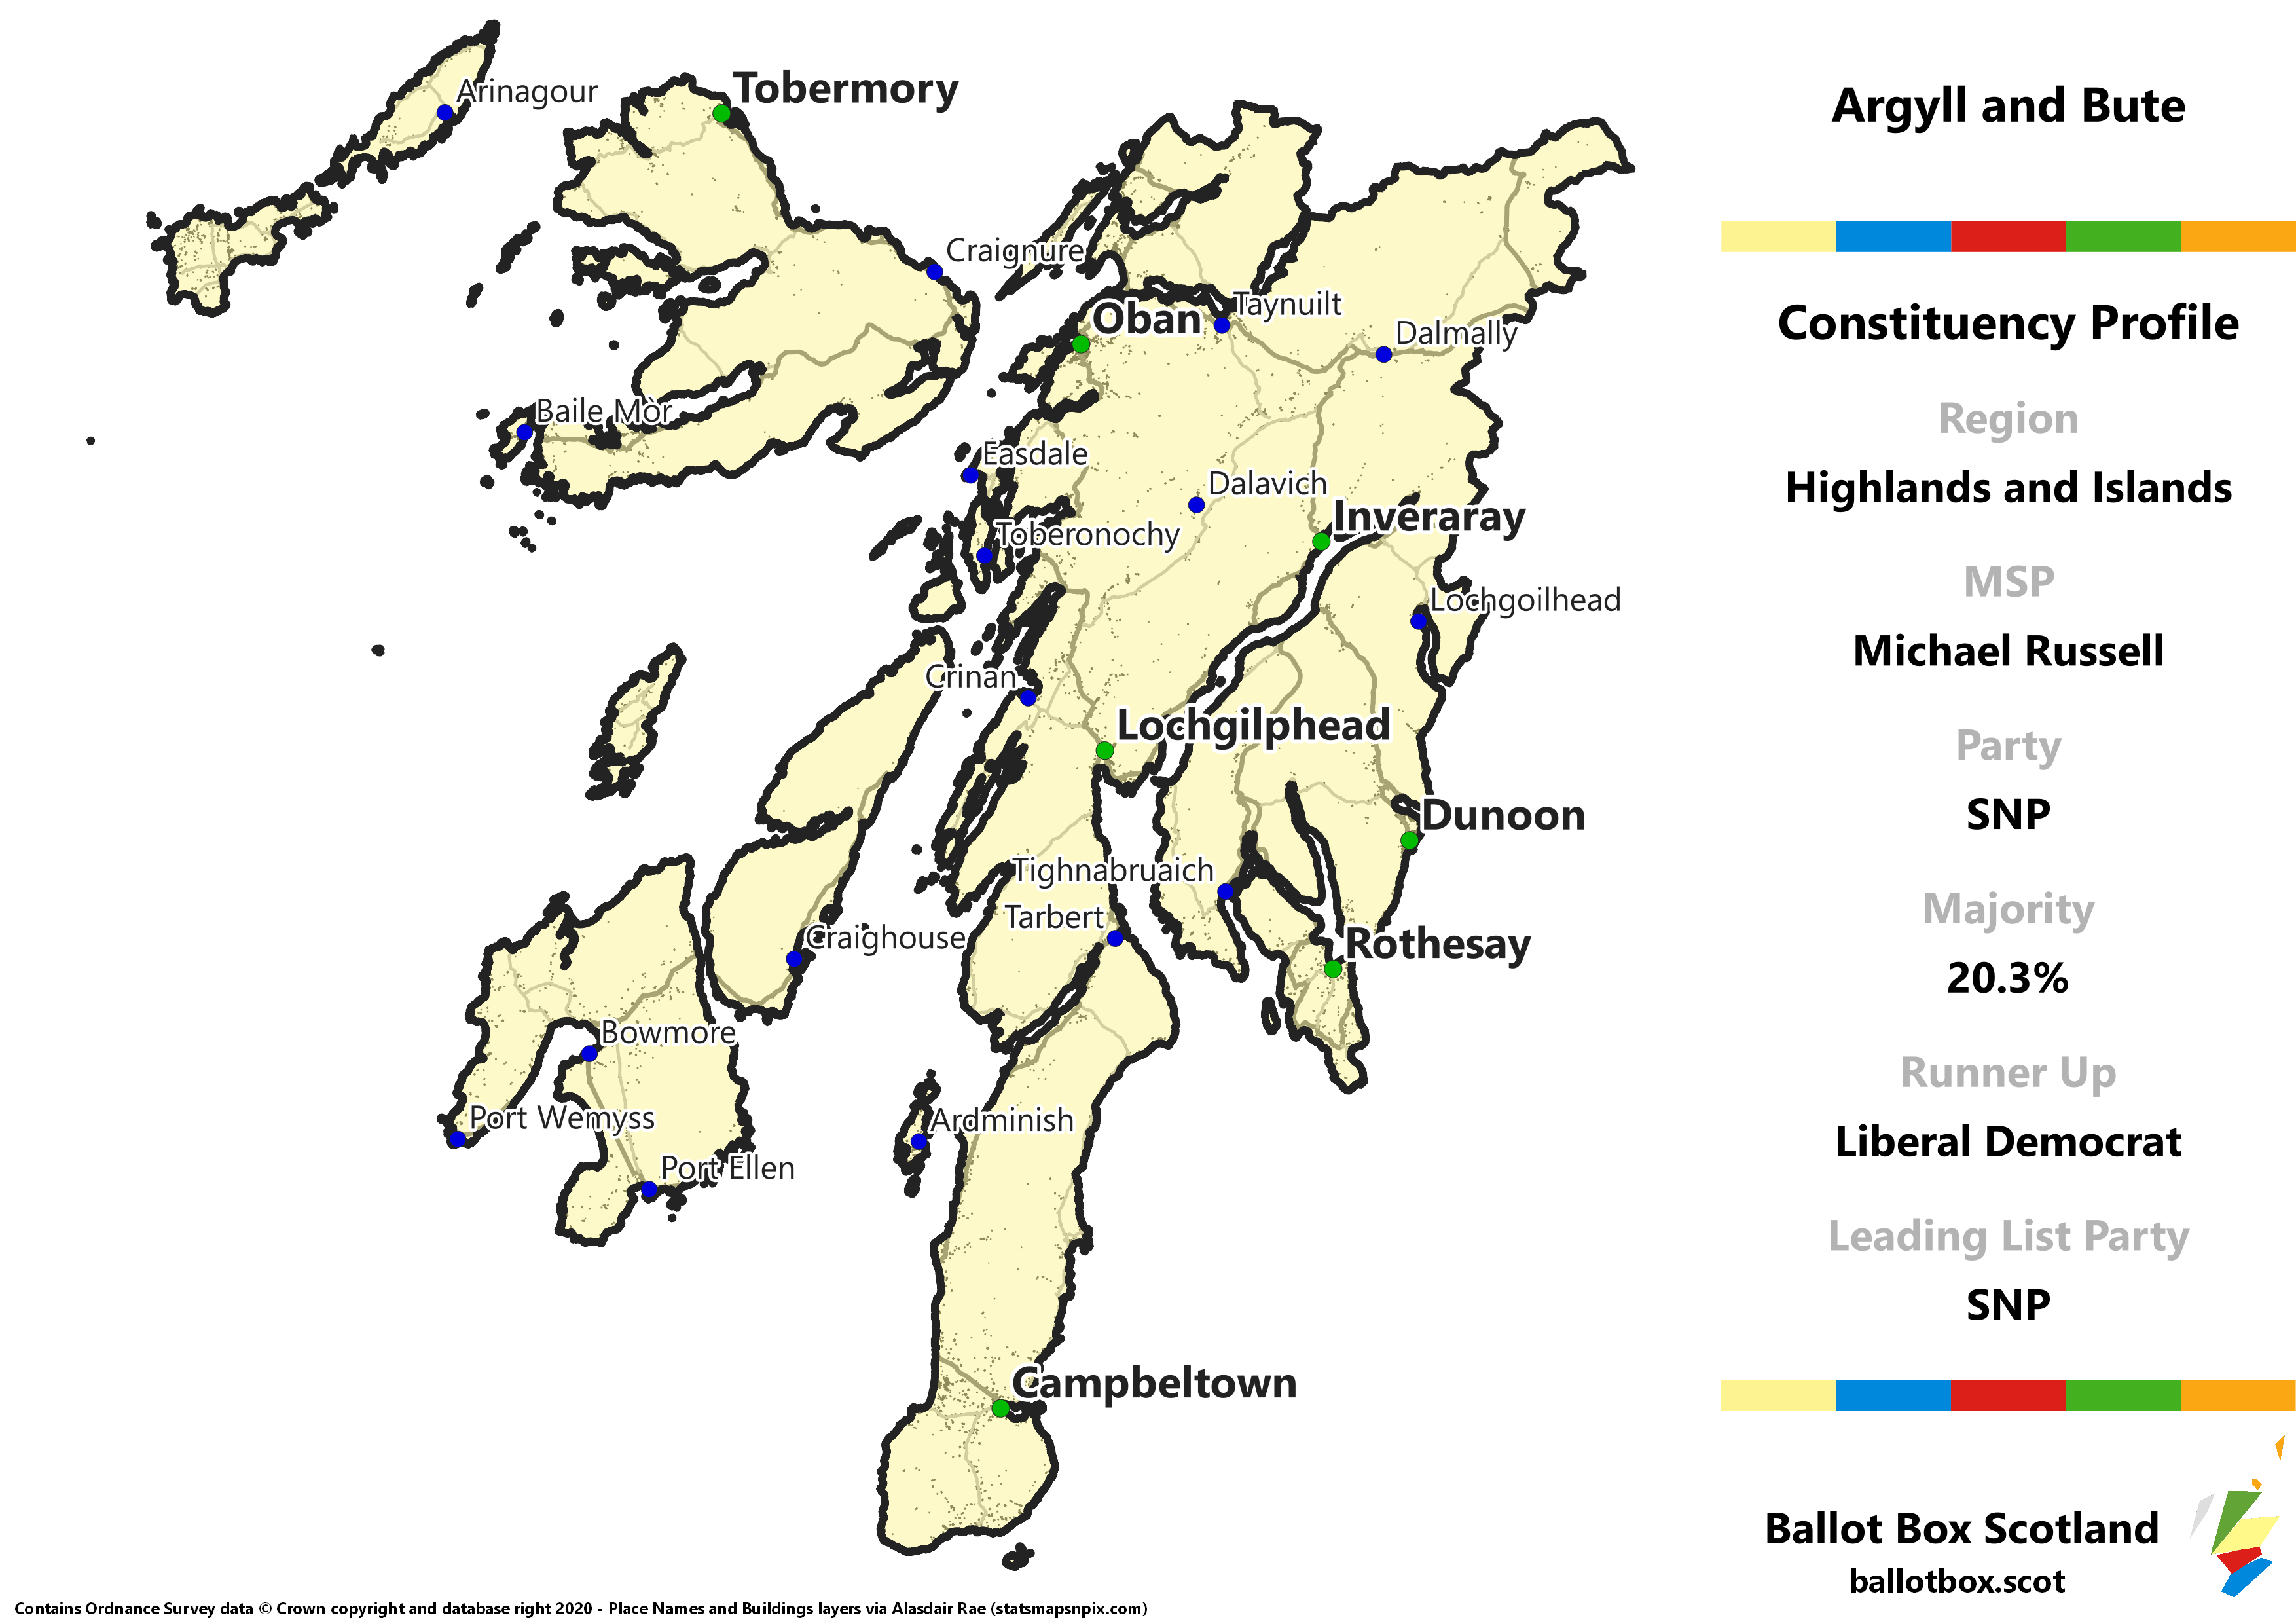 Highlands and Islands Region – Argyll and Bute Constituency Map